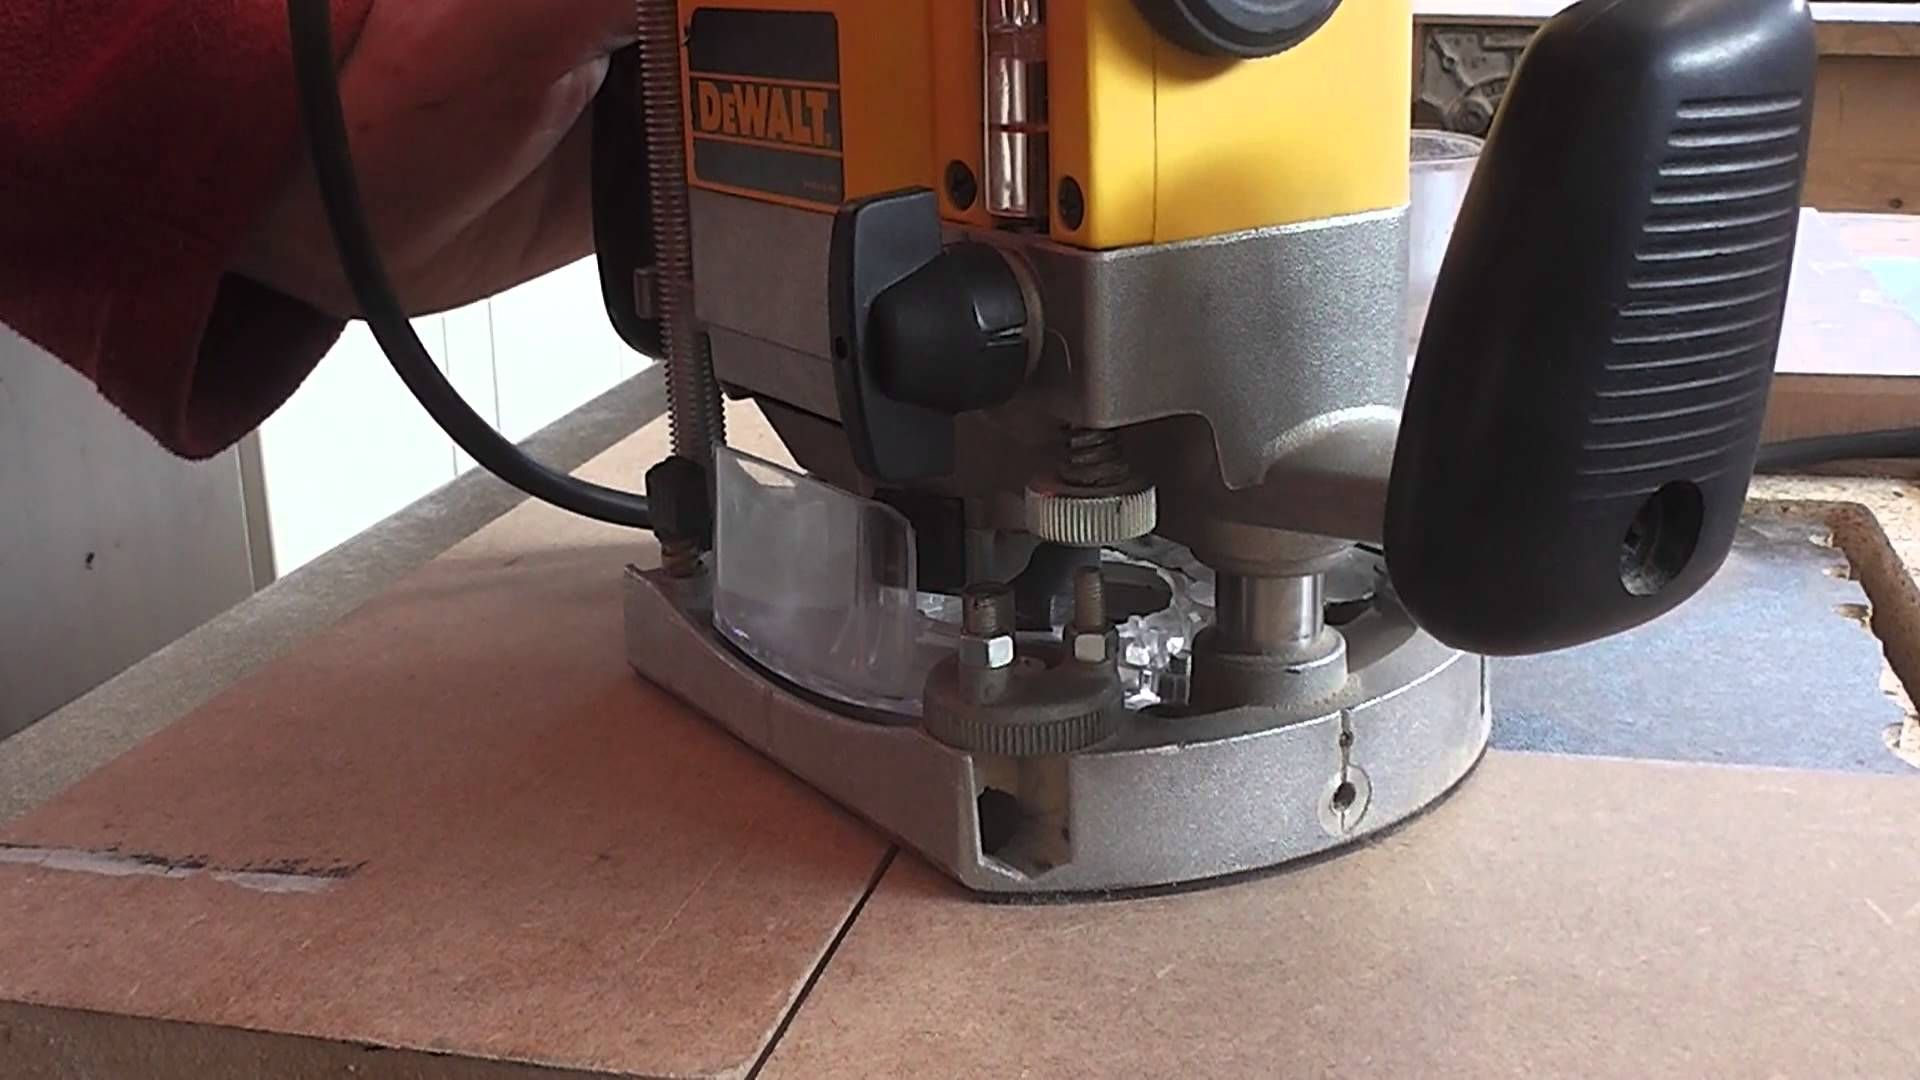 How to build a router table | ideas | Build a router table, Router